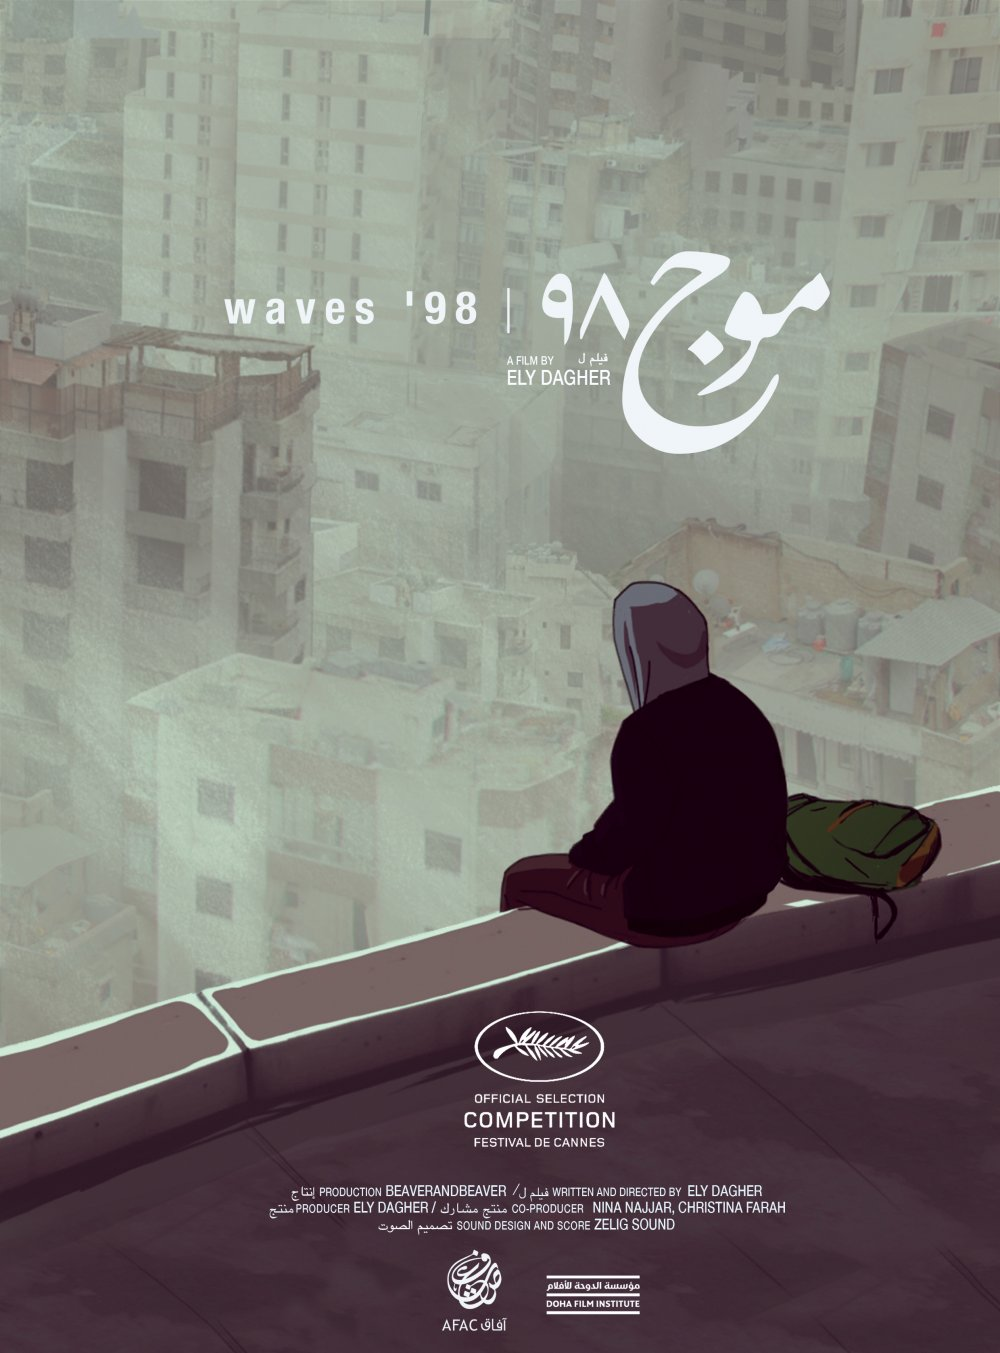 Ely Dagher's Waves 98, in Cannes' Short Film Competition